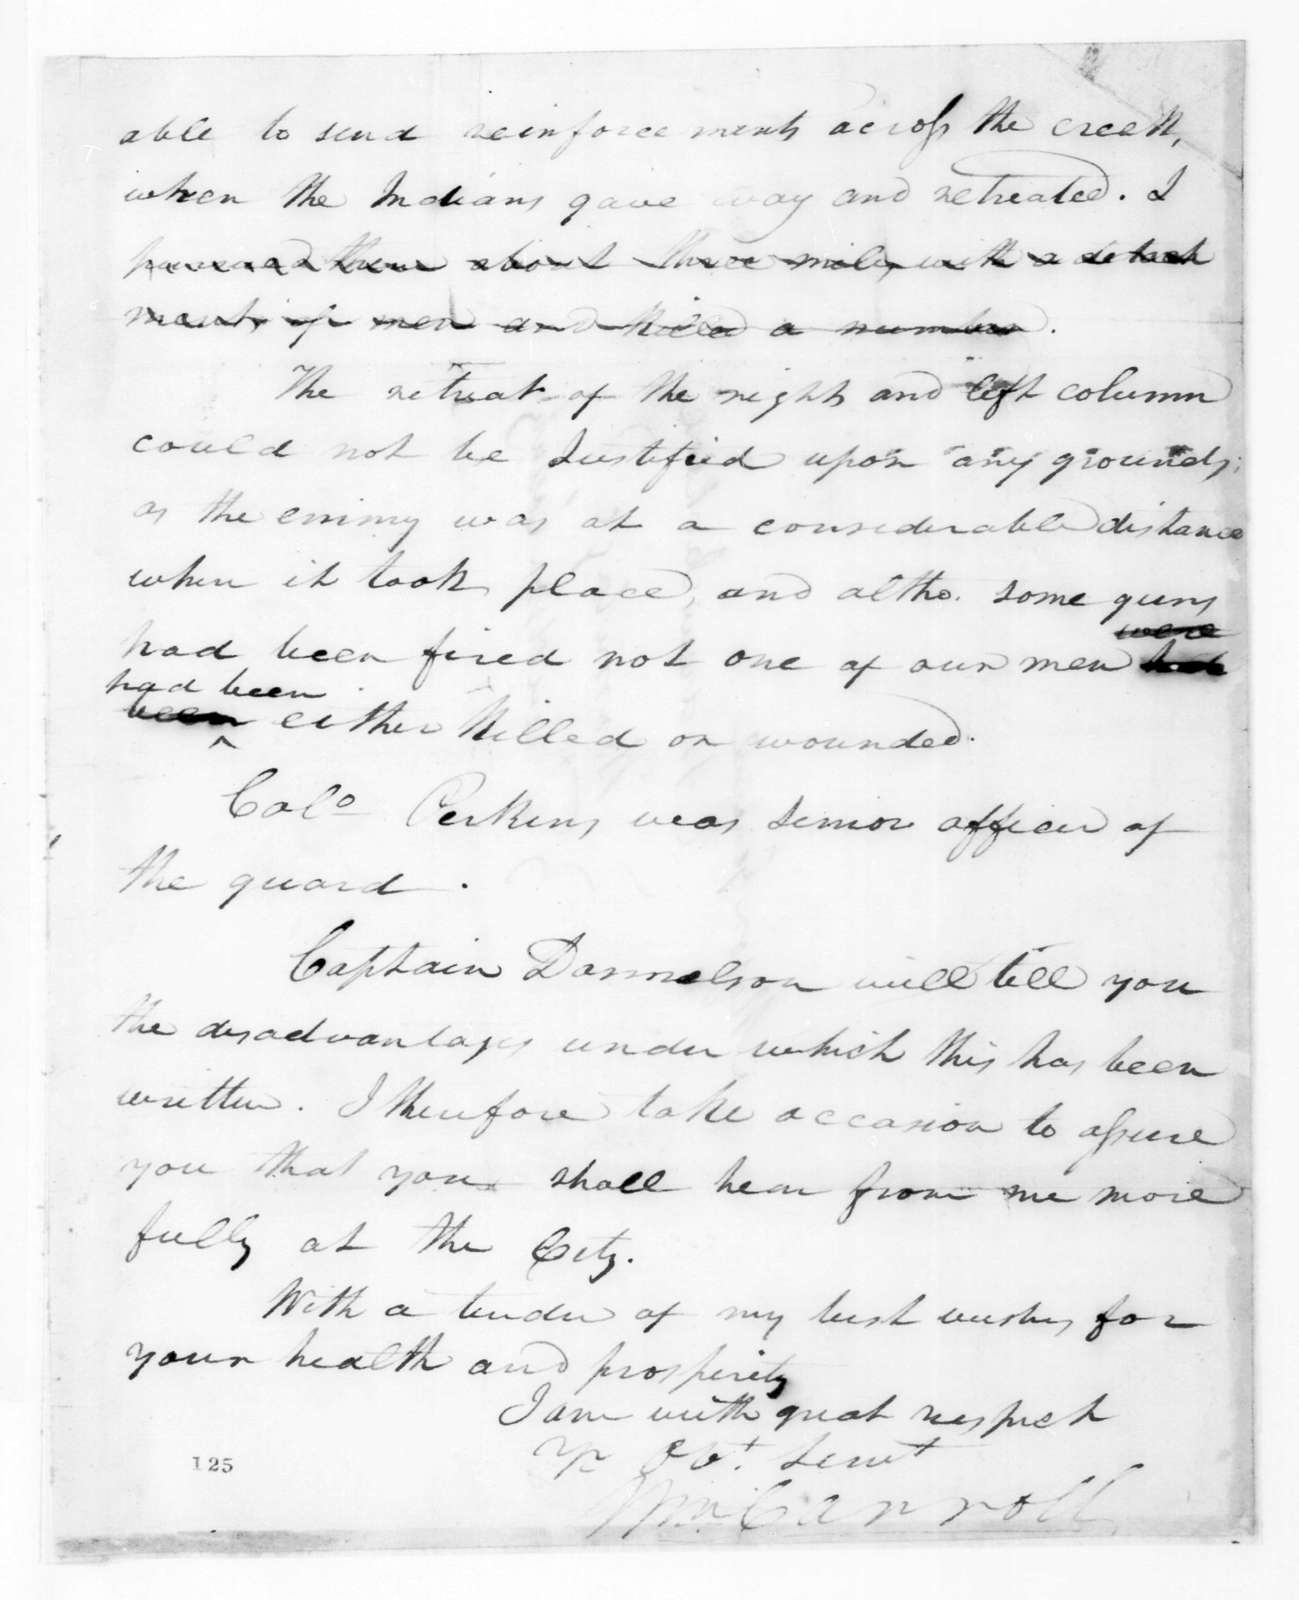 William Carroll to Andrew Jackson, November 6, 1824